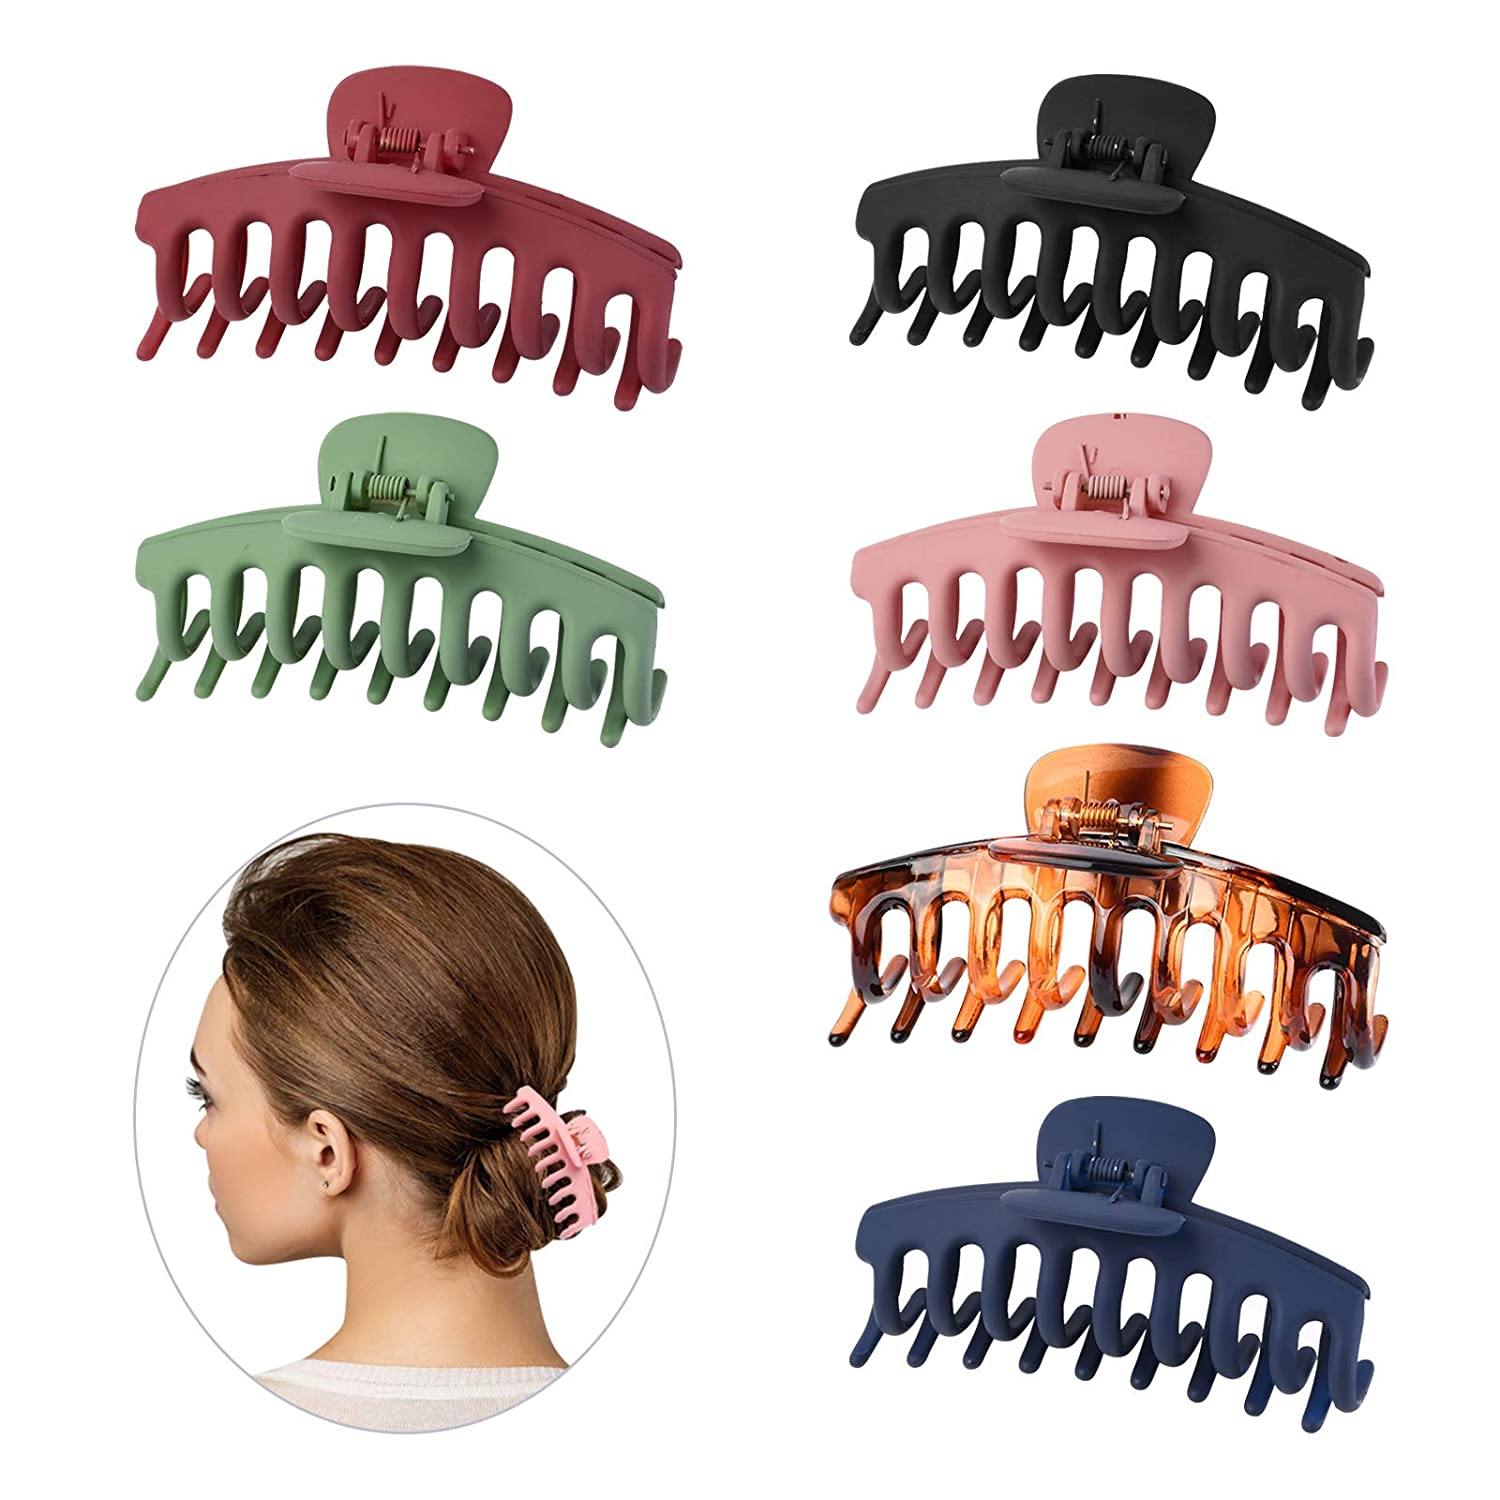 6PCS 67% OFF of fixed price 4.3Inch Big Hair Now free shipping Claw Clips Plastic Jaw PS Nonslip f